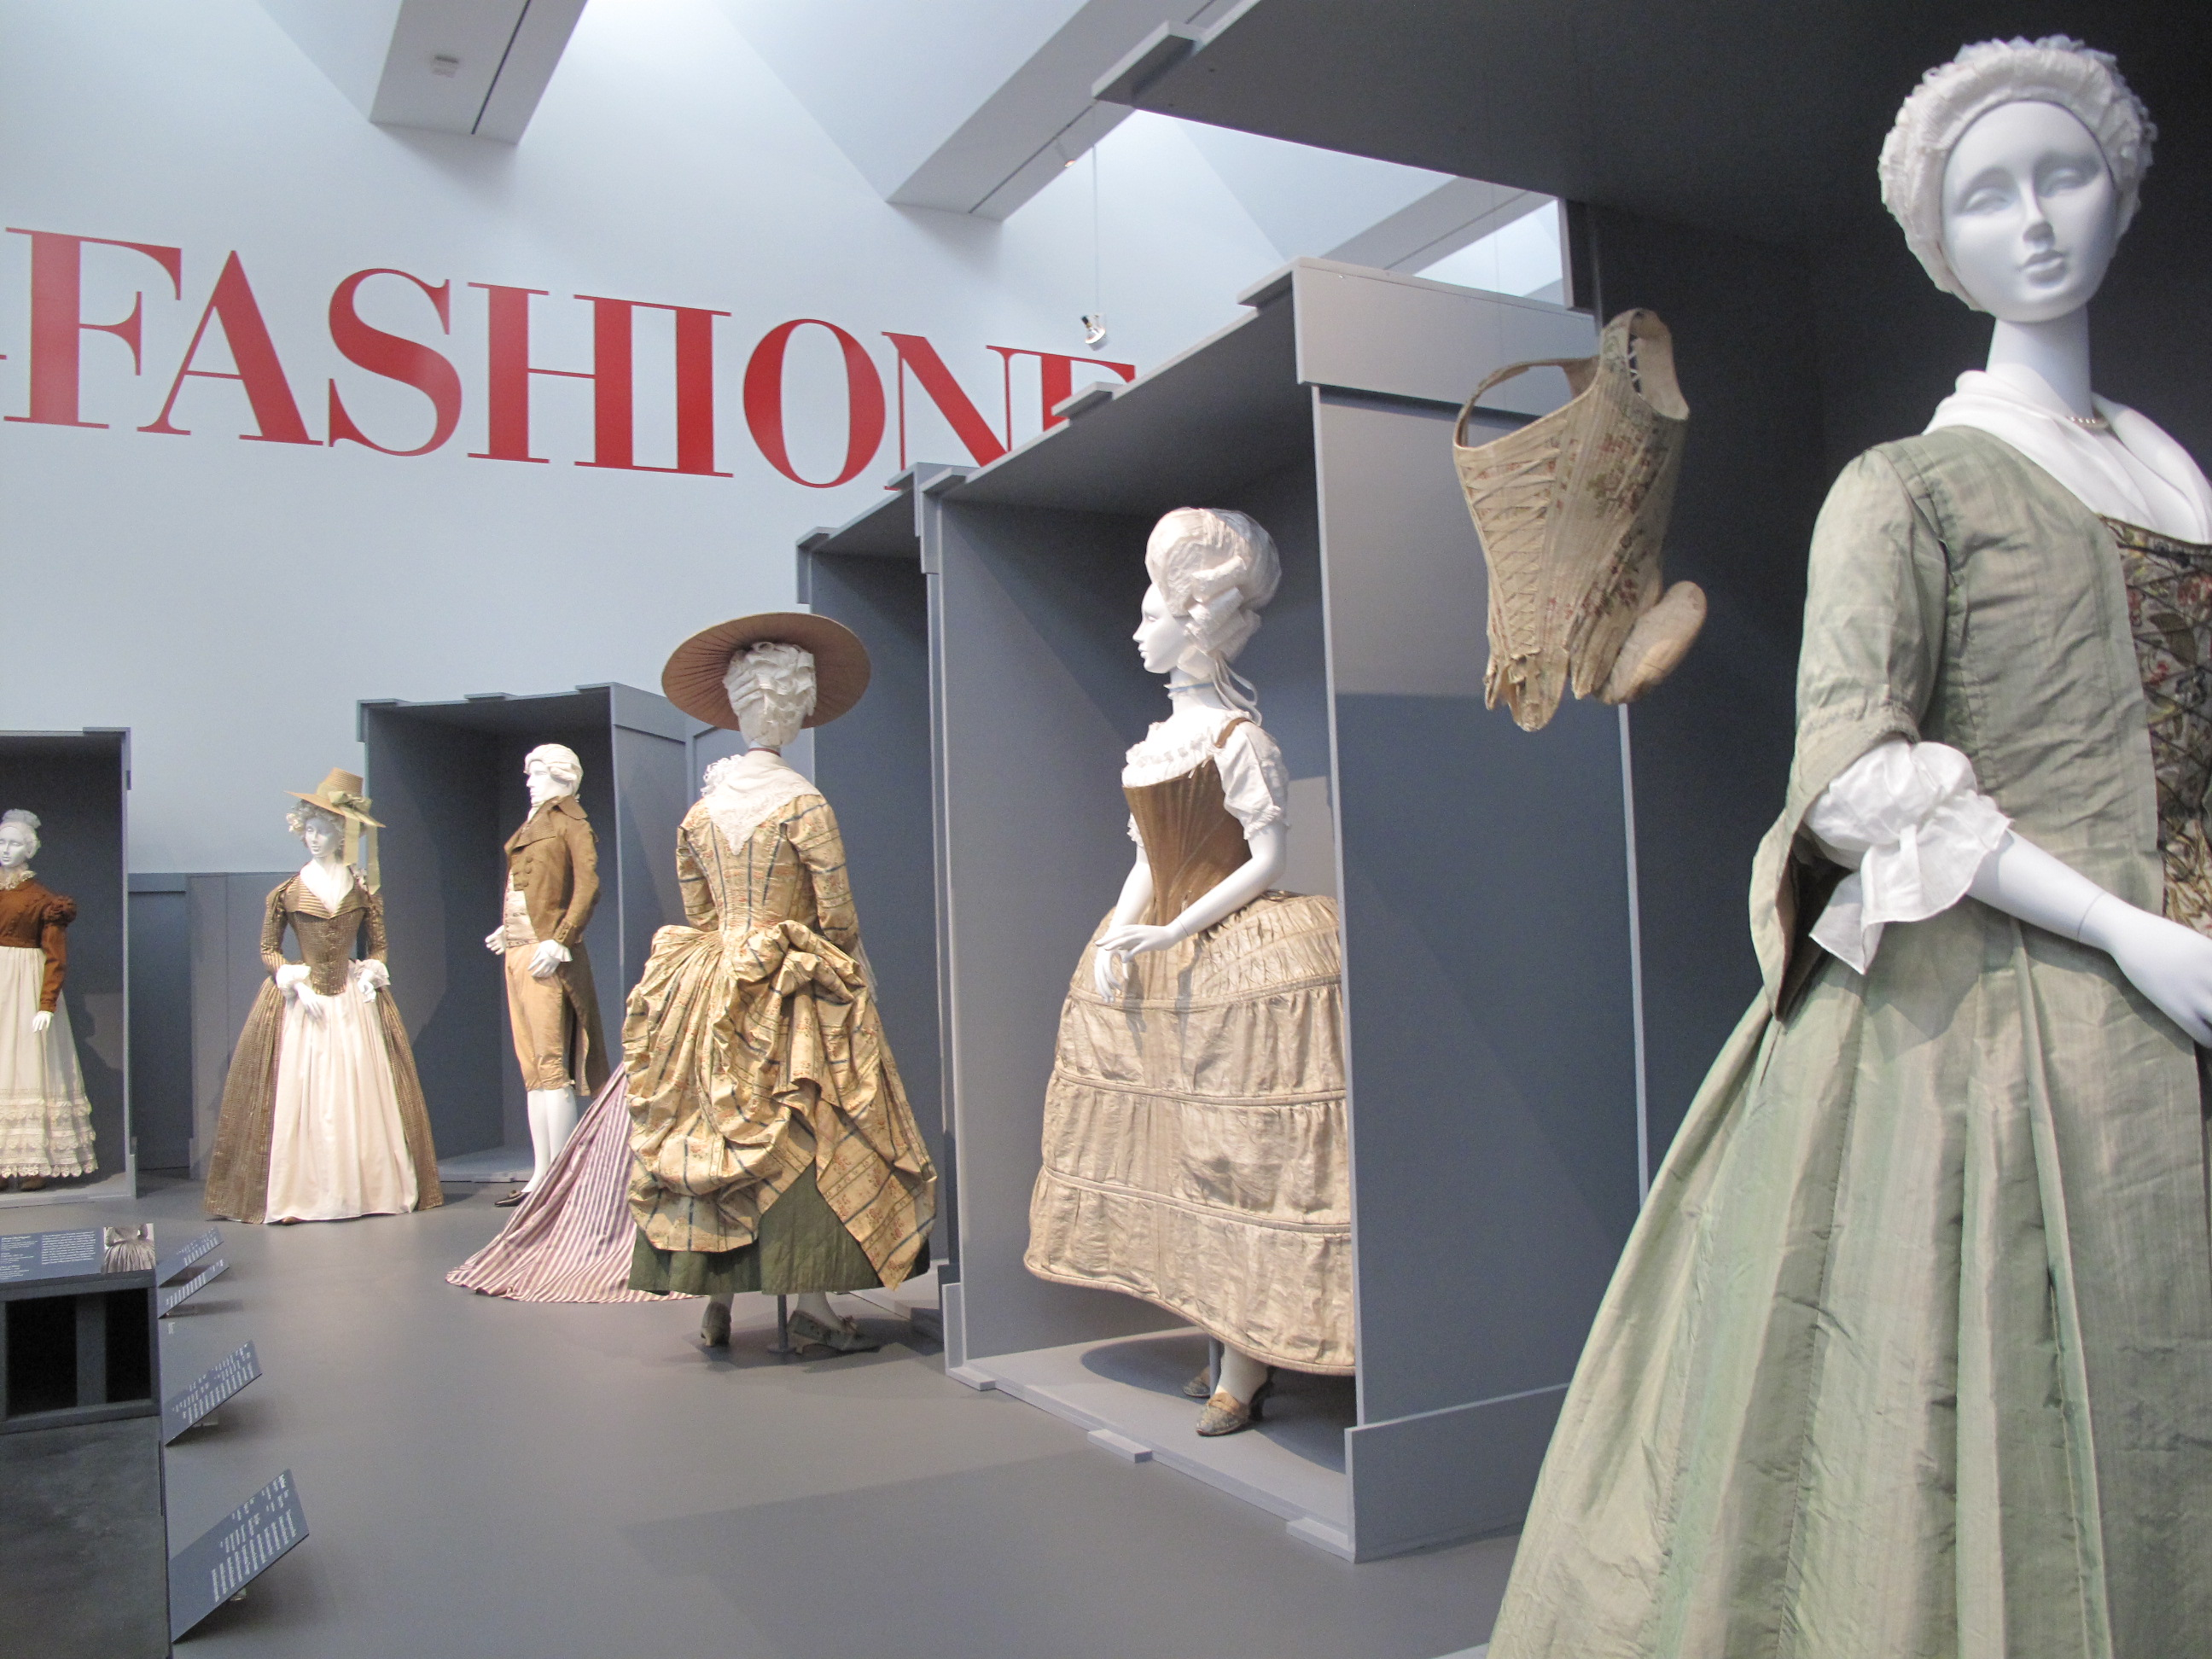 Fashion Exhibition Booth : Two hundred years of european fashion land in paris